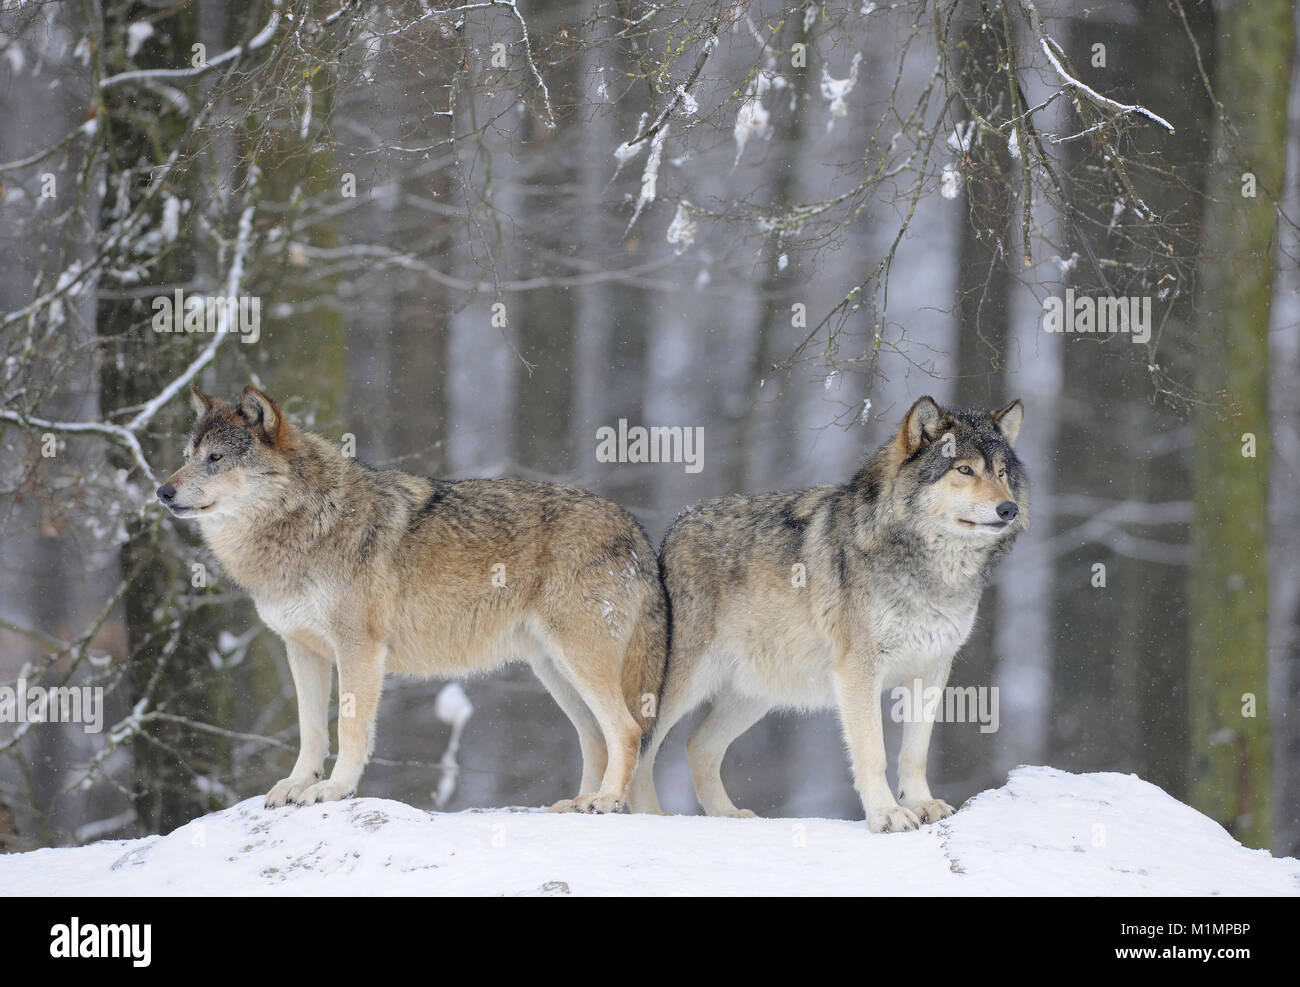 Wolf Timber Wolf Canis lupus, Wolf Timberwolf Canis lupus - Stock Image